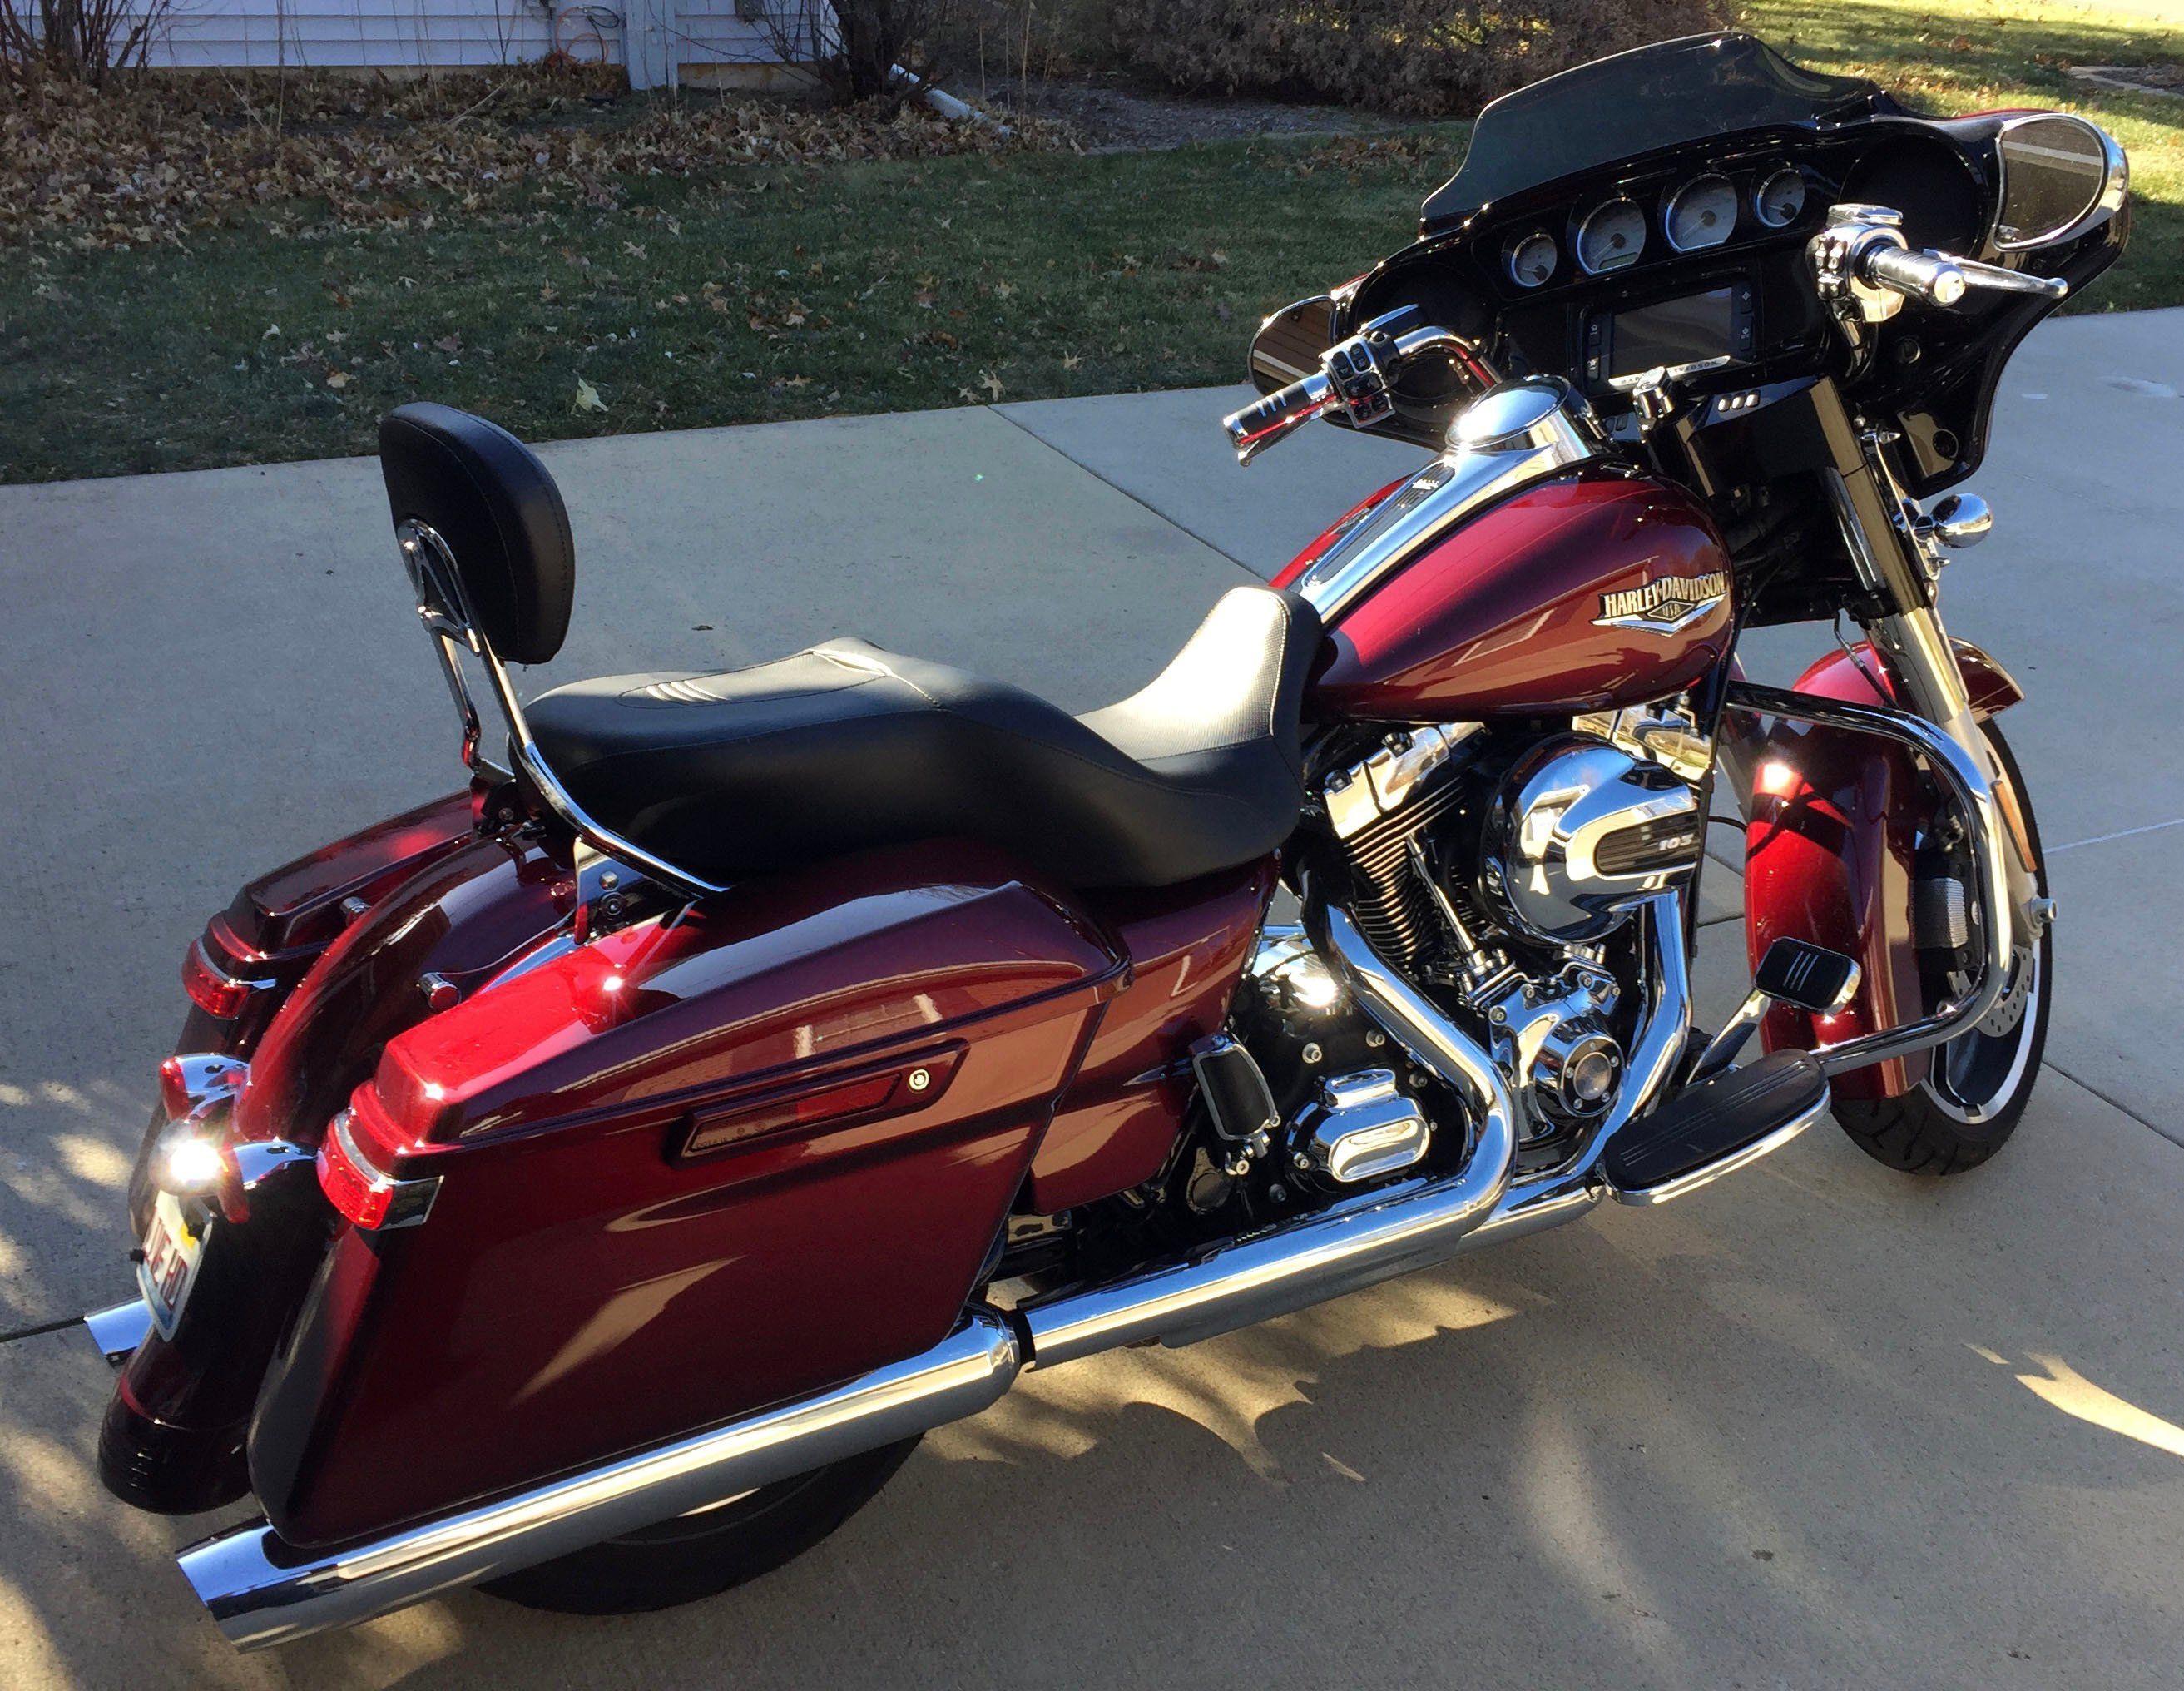 HARLEY 2014 Streetglide Special - estimated 6000 miles, various accessories